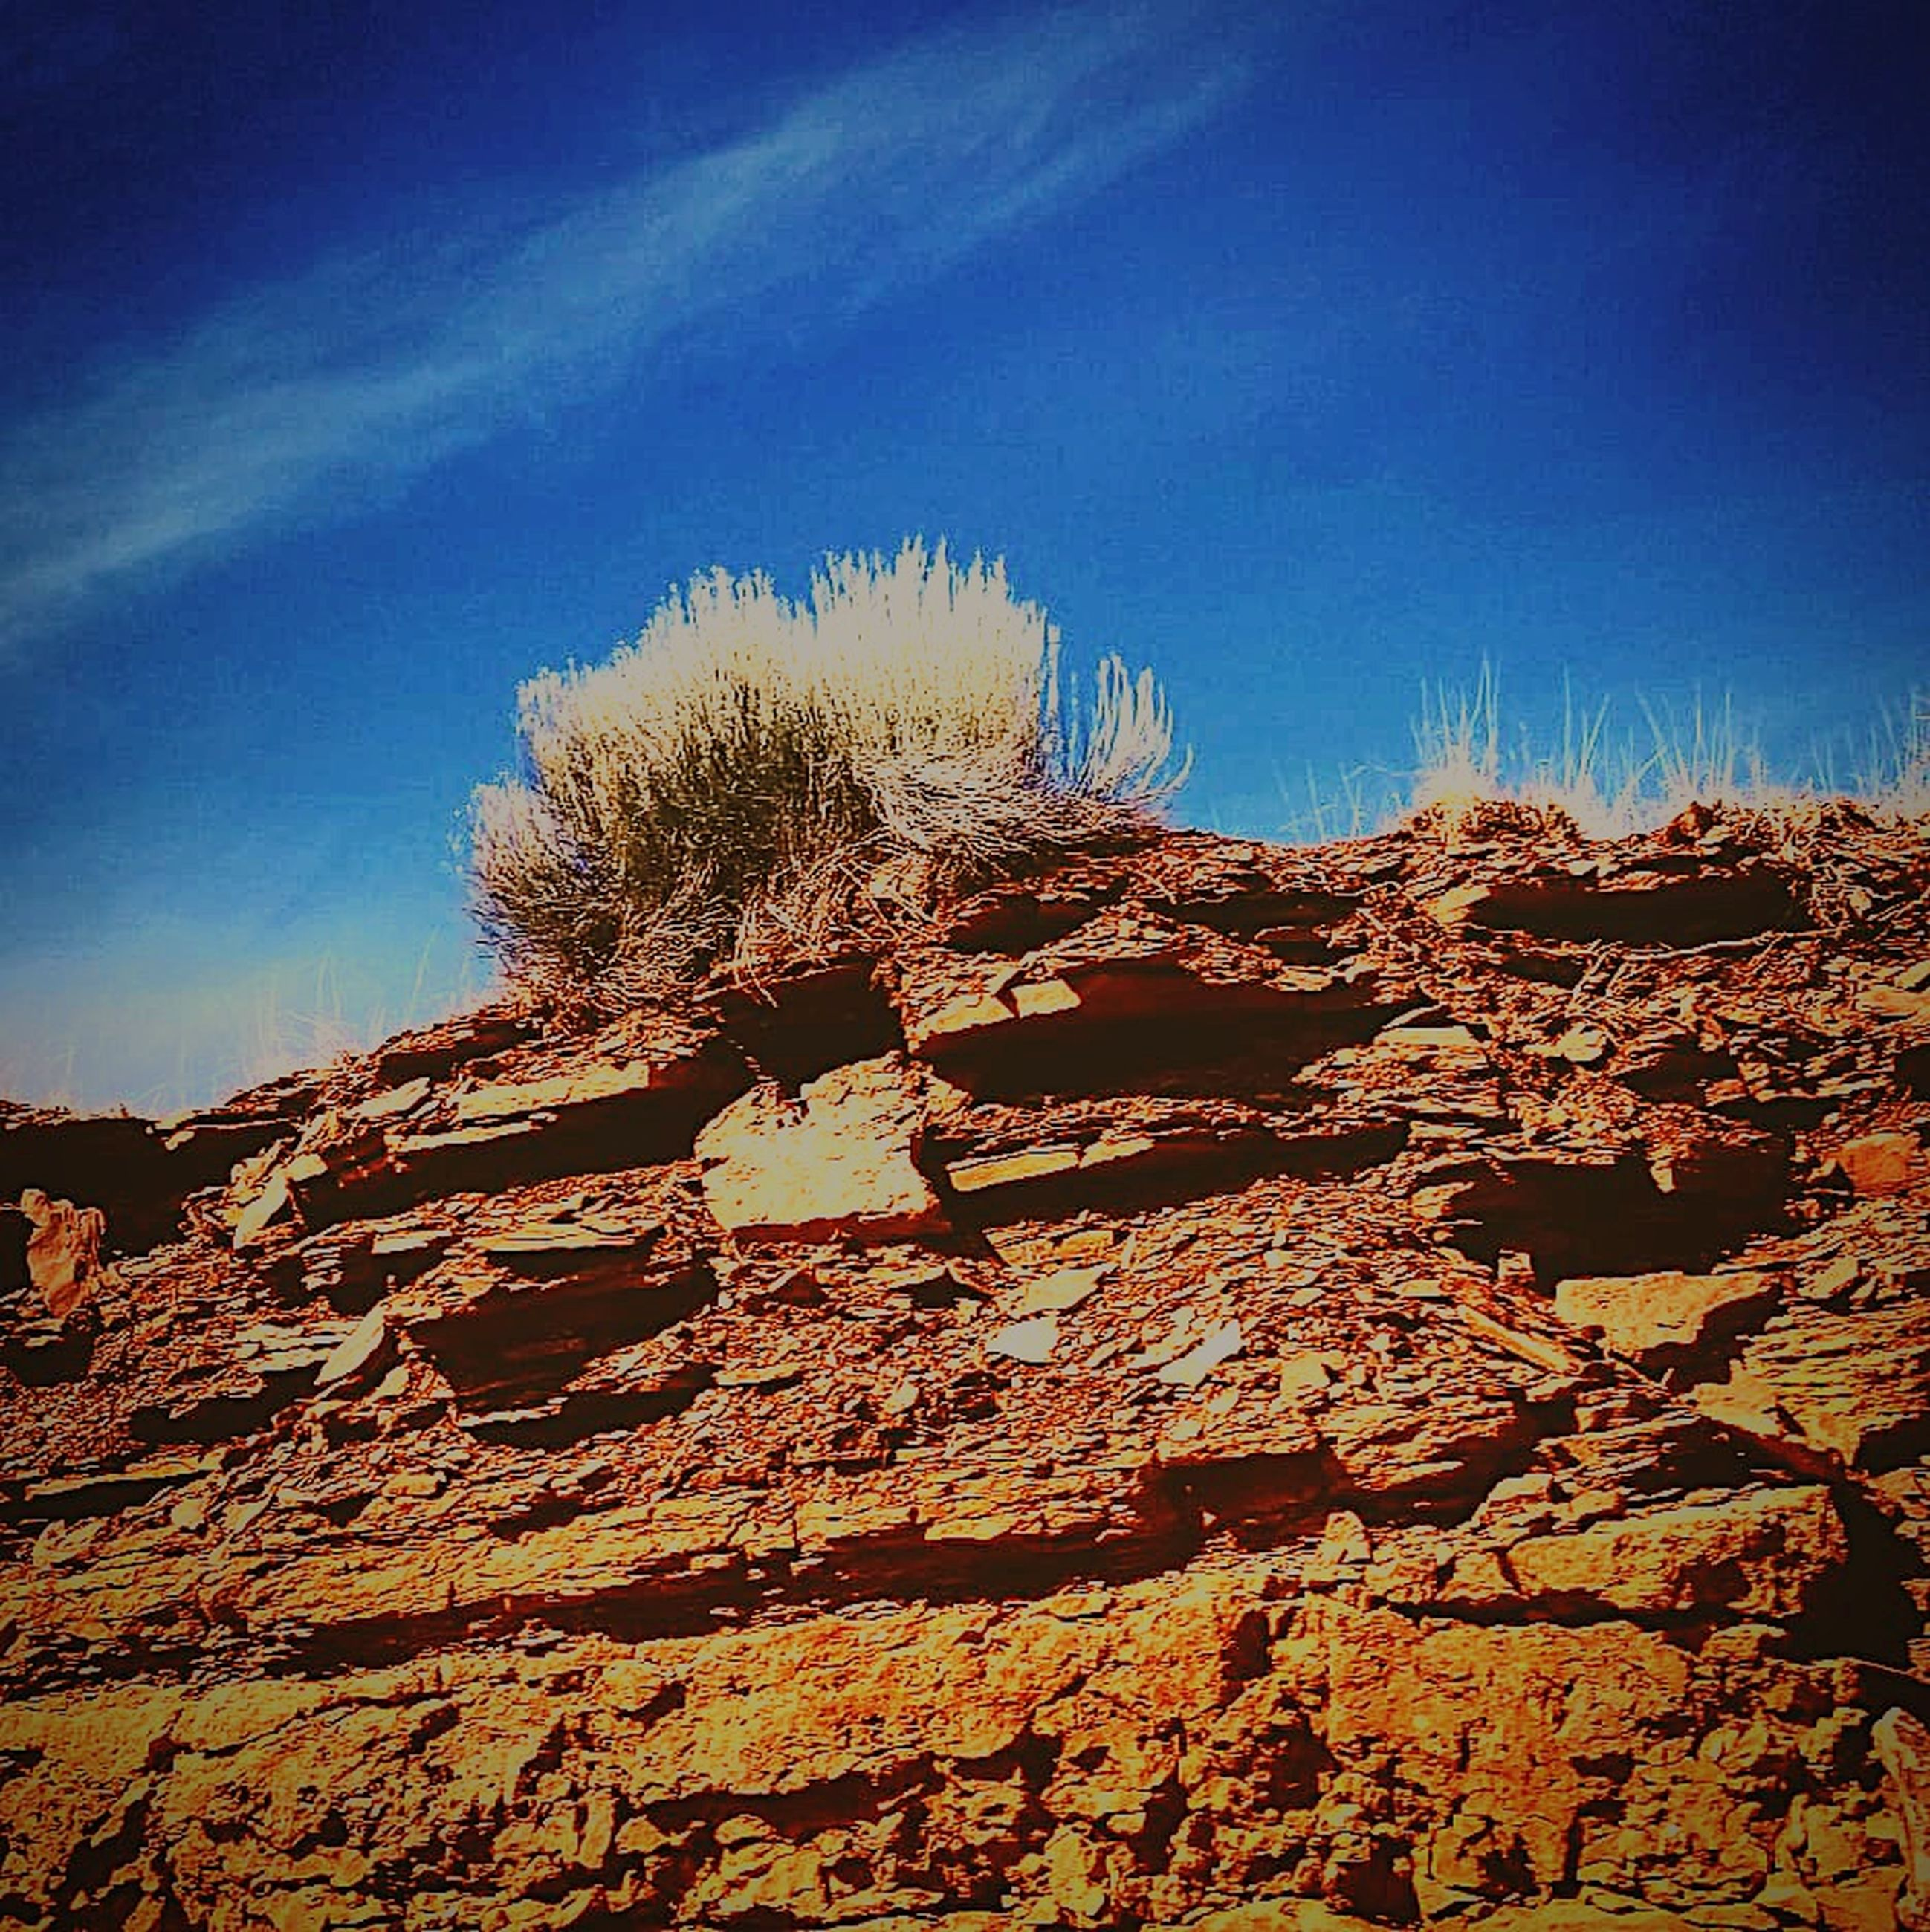 sky, rock, blue, rock - object, scenics - nature, nature, solid, beauty in nature, no people, tranquility, rock formation, tranquil scene, day, low angle view, clear sky, sunlight, non-urban scene, land, physical geography, geology, outdoors, eroded, formation, arid climate, climate